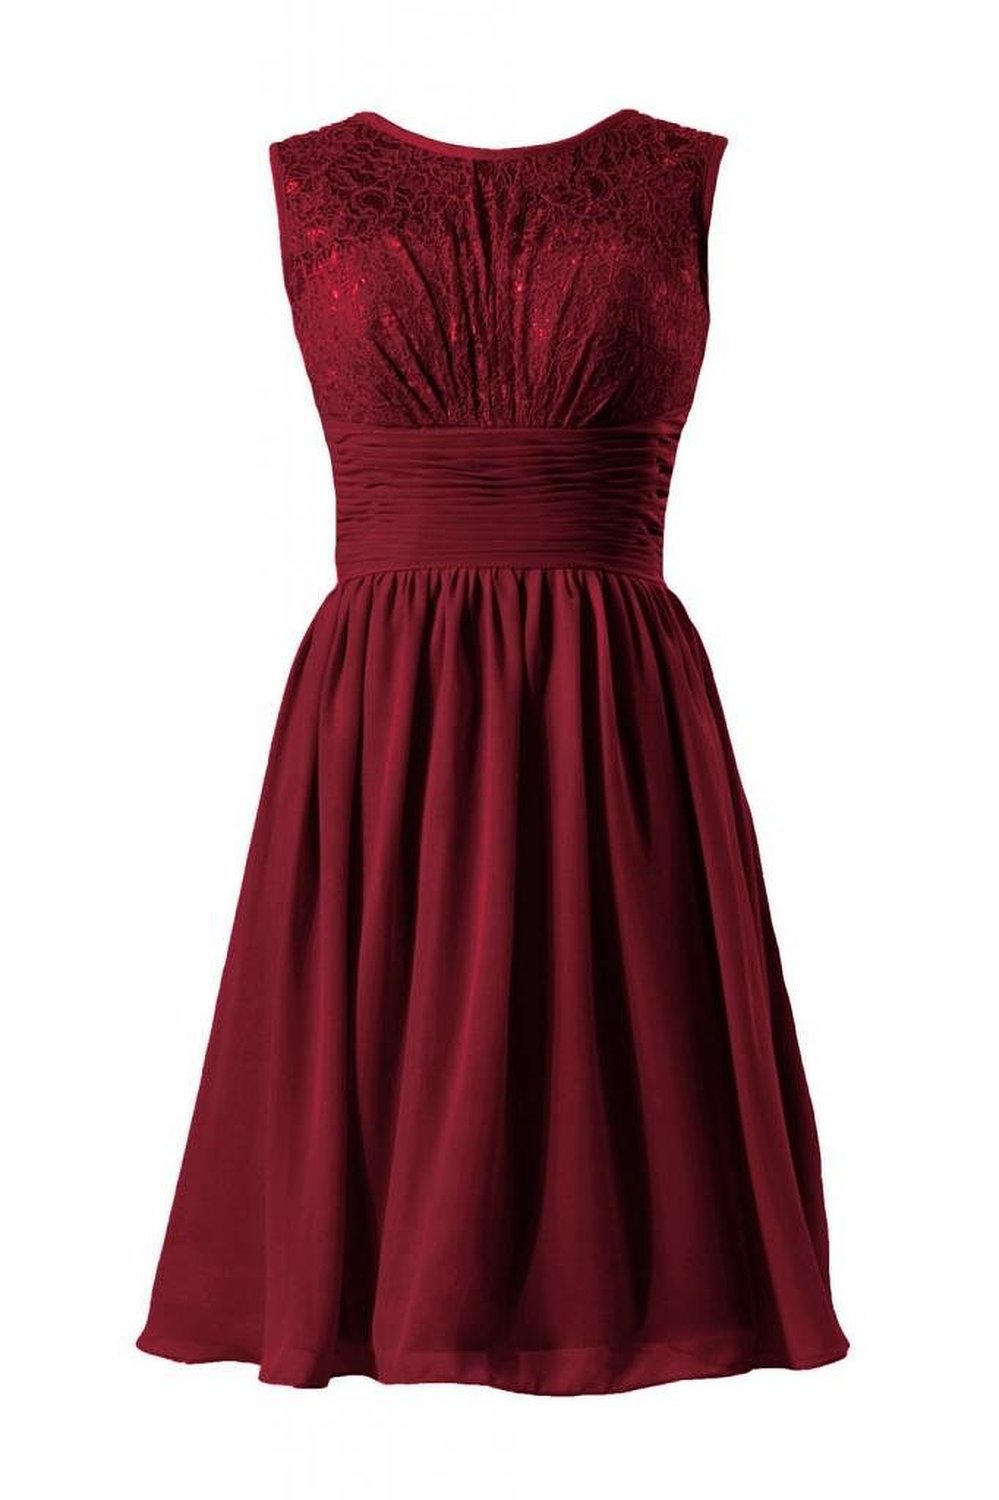 Burgundy Short Bridesmaid Dresses Good Choice Image Braidsmaid Dress